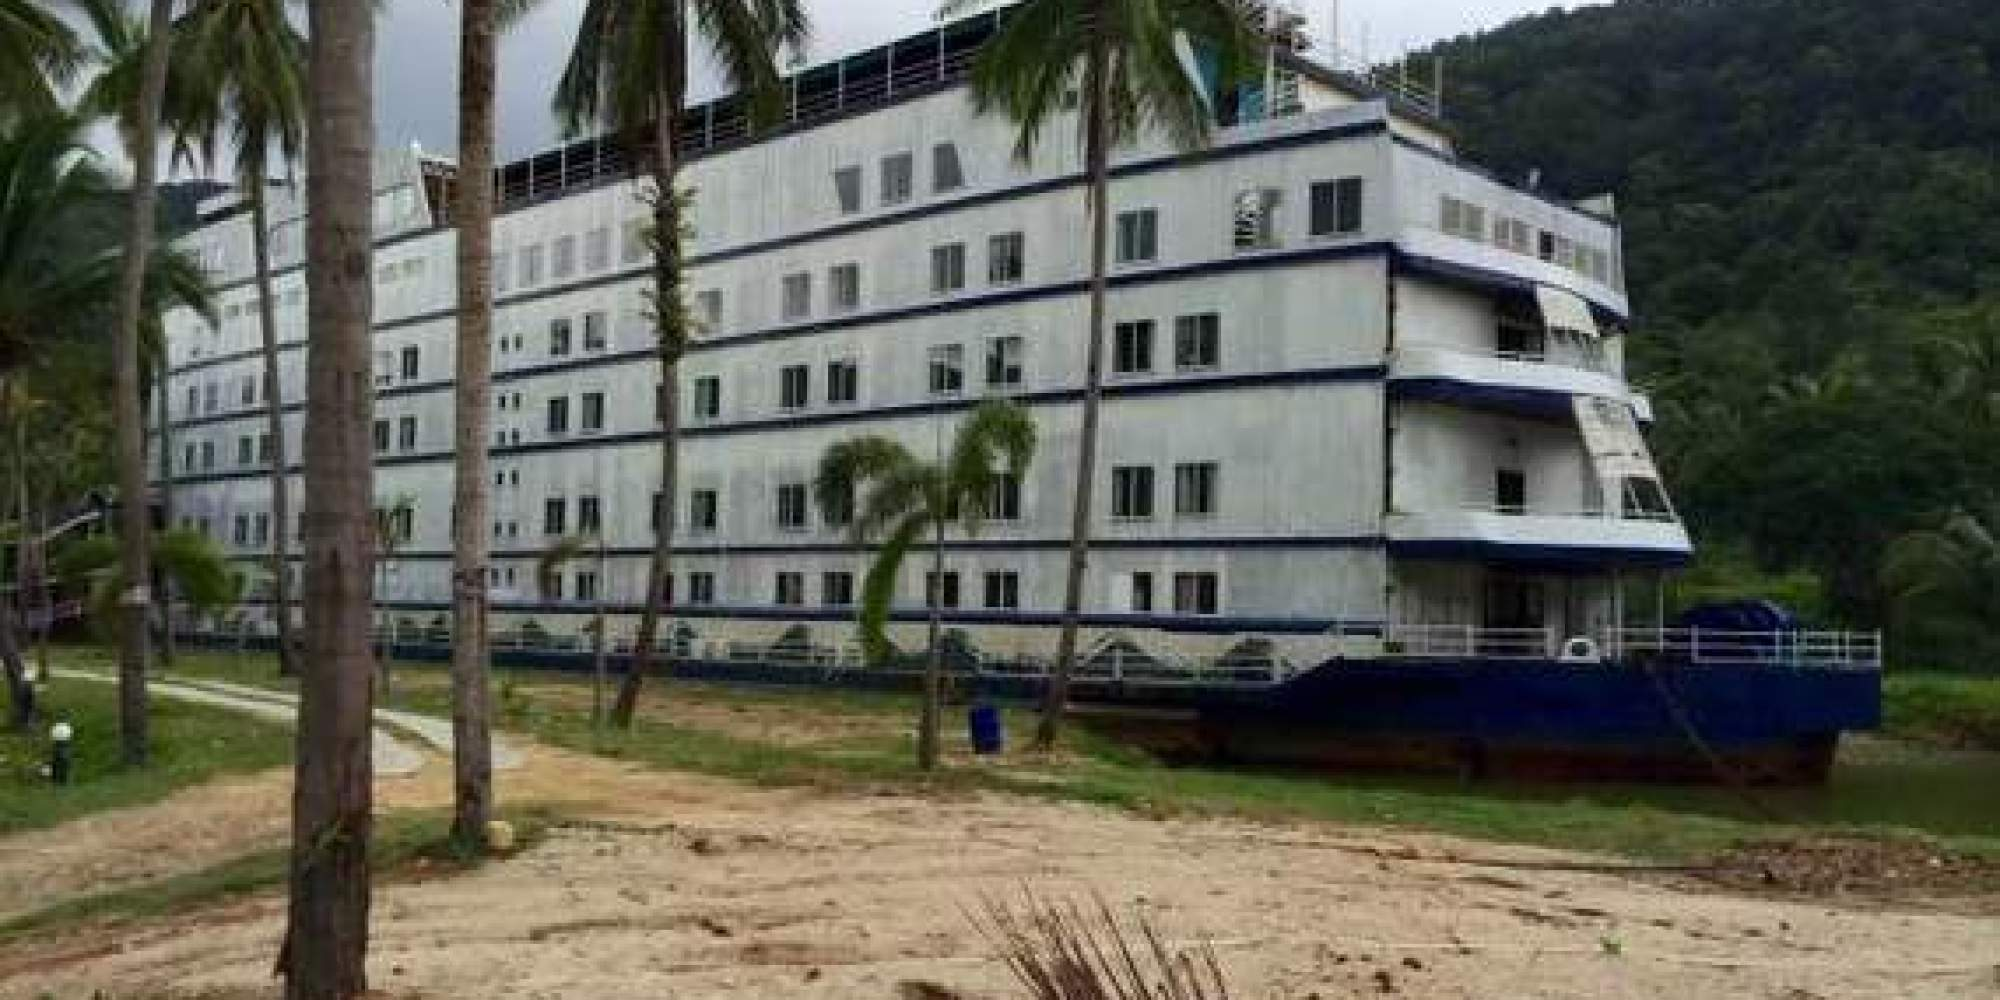 This Abandoned Cruise Ship on Koh Chang Will Give You the Creeps ...